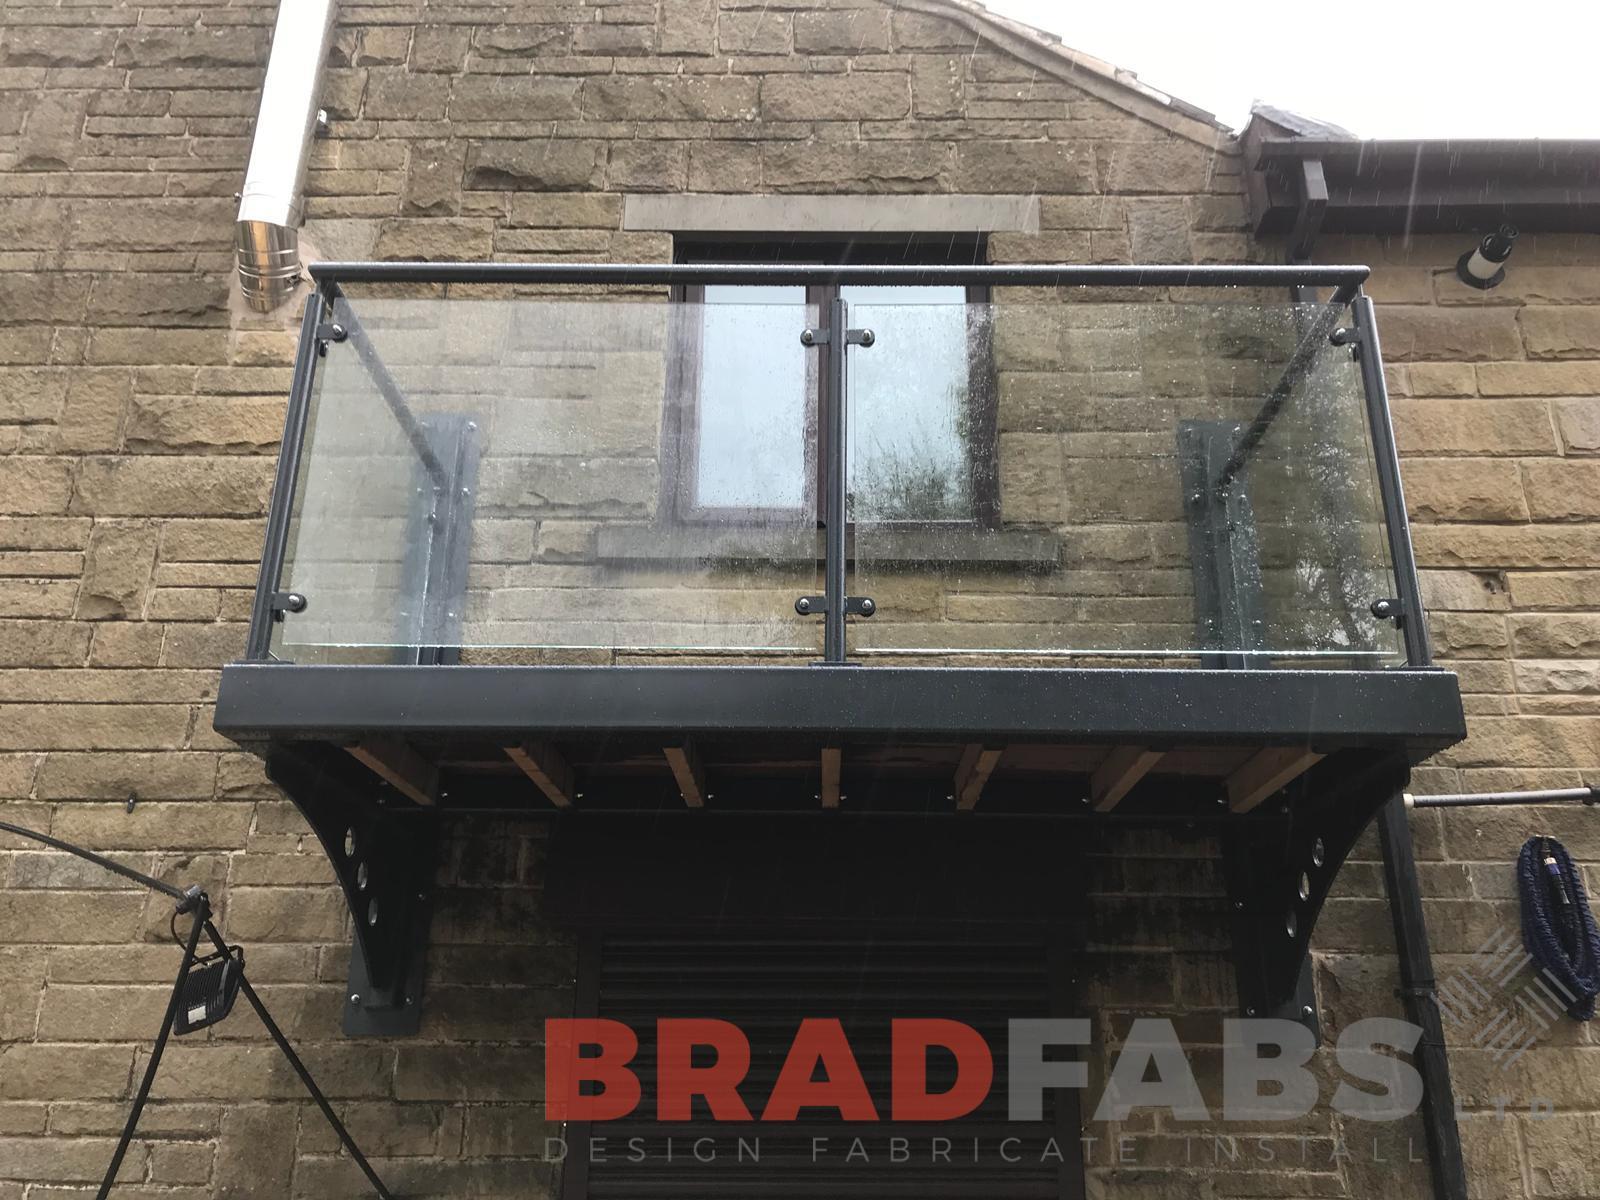 Balcony without leg support designed, manufactured and installed by Bradfabs